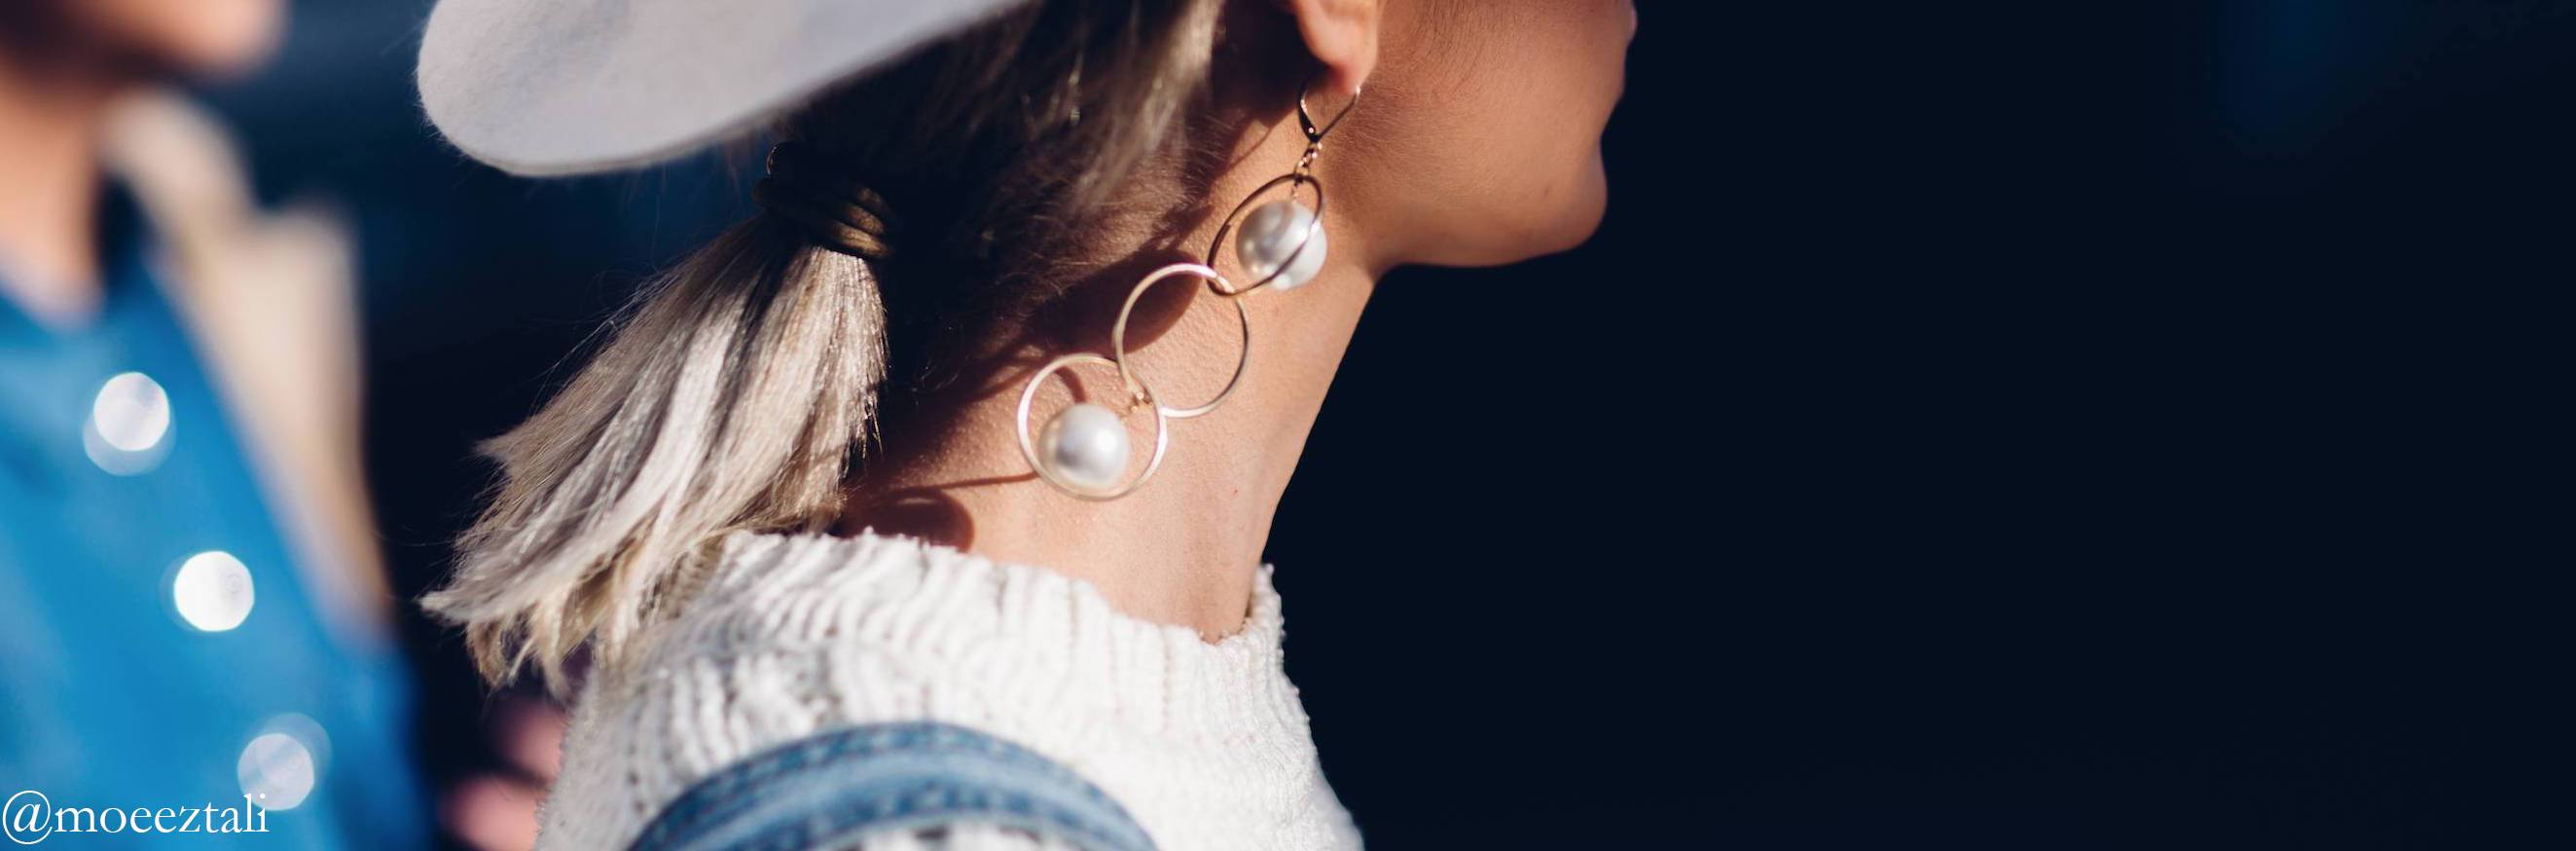 Streetstyle-picture-pearlearring-close-up-by-moeeztal